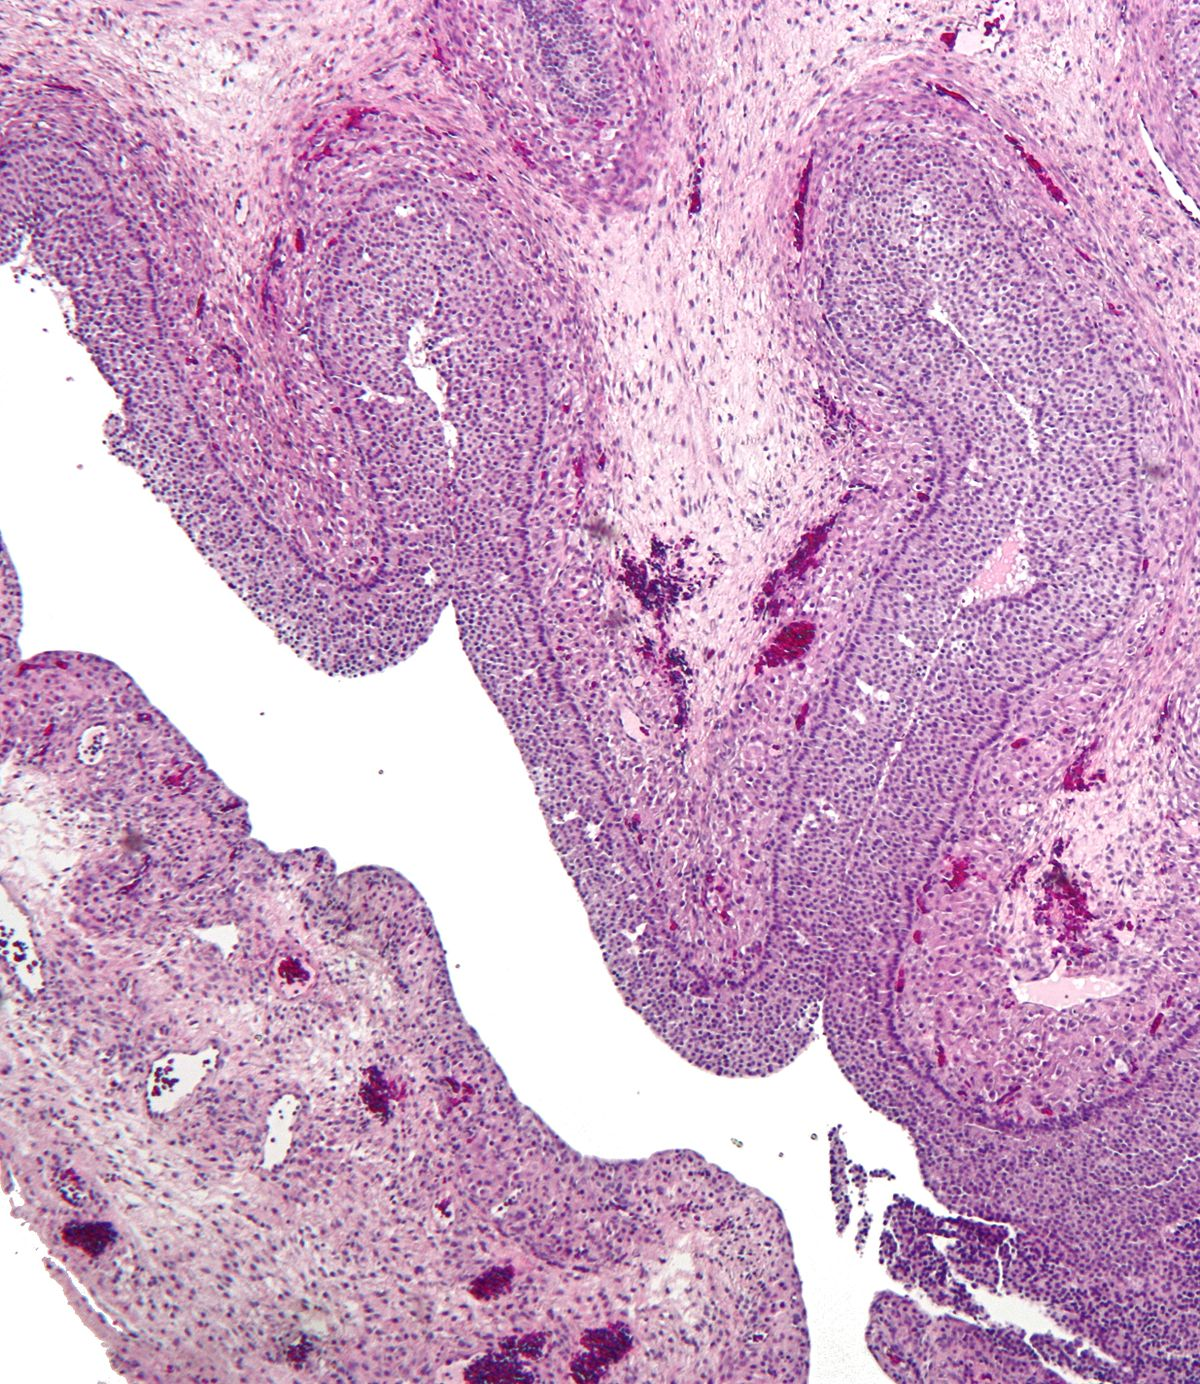 Follicular Cyst Of Ovary Wikipedia